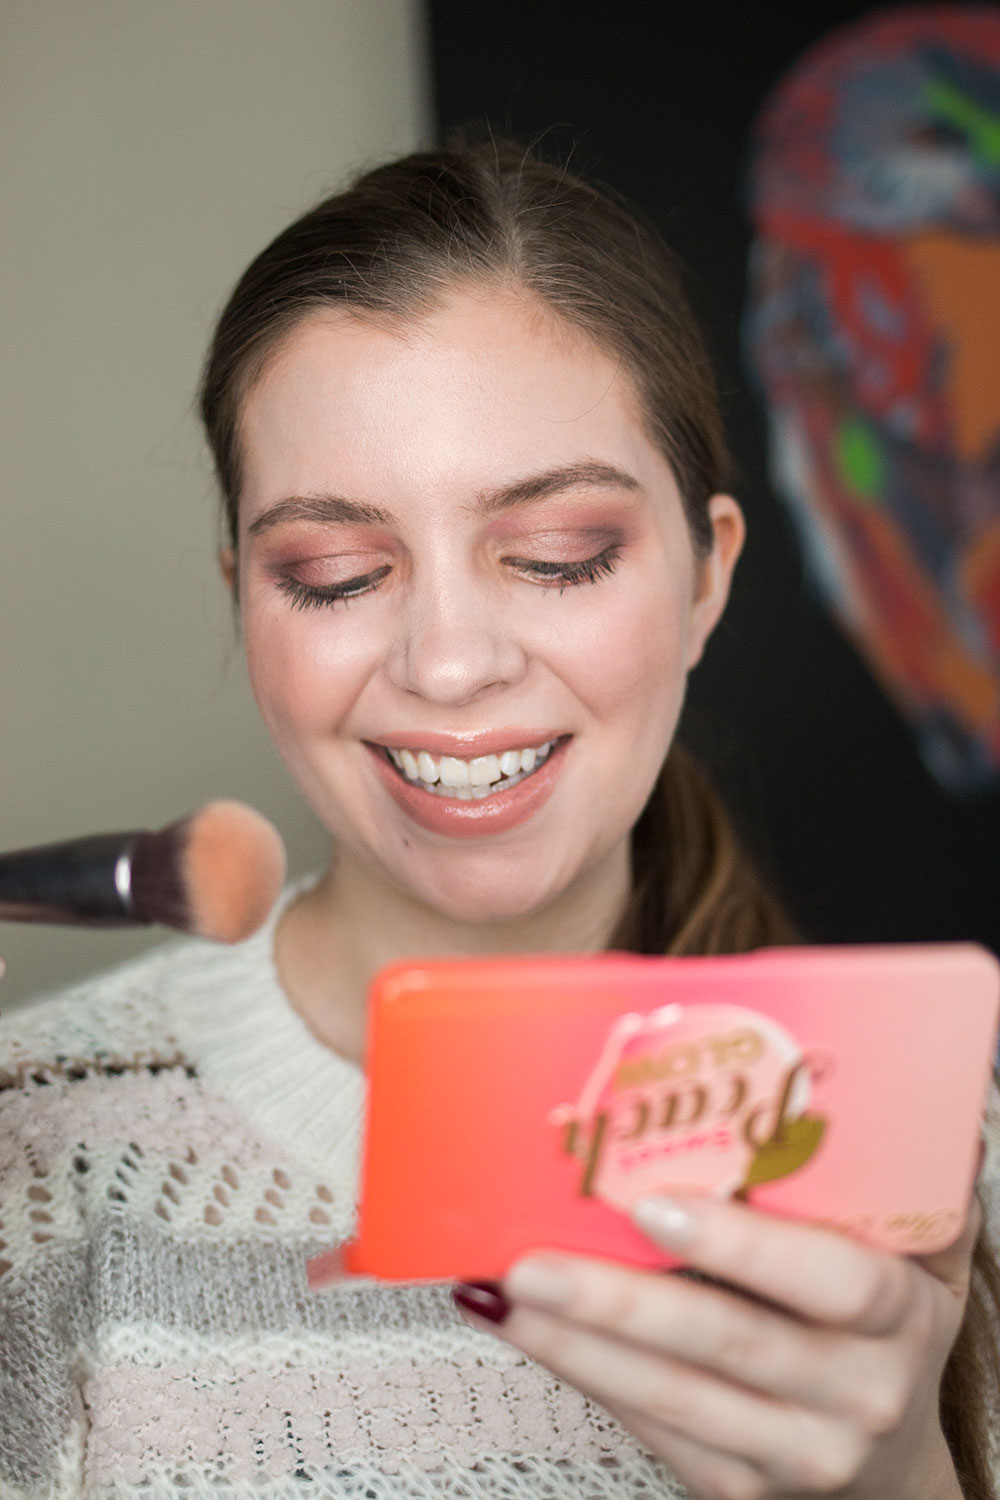 Too Faced Sweet Peach Glow Palette Review // Hello Rigby Seattle Beauty Blog